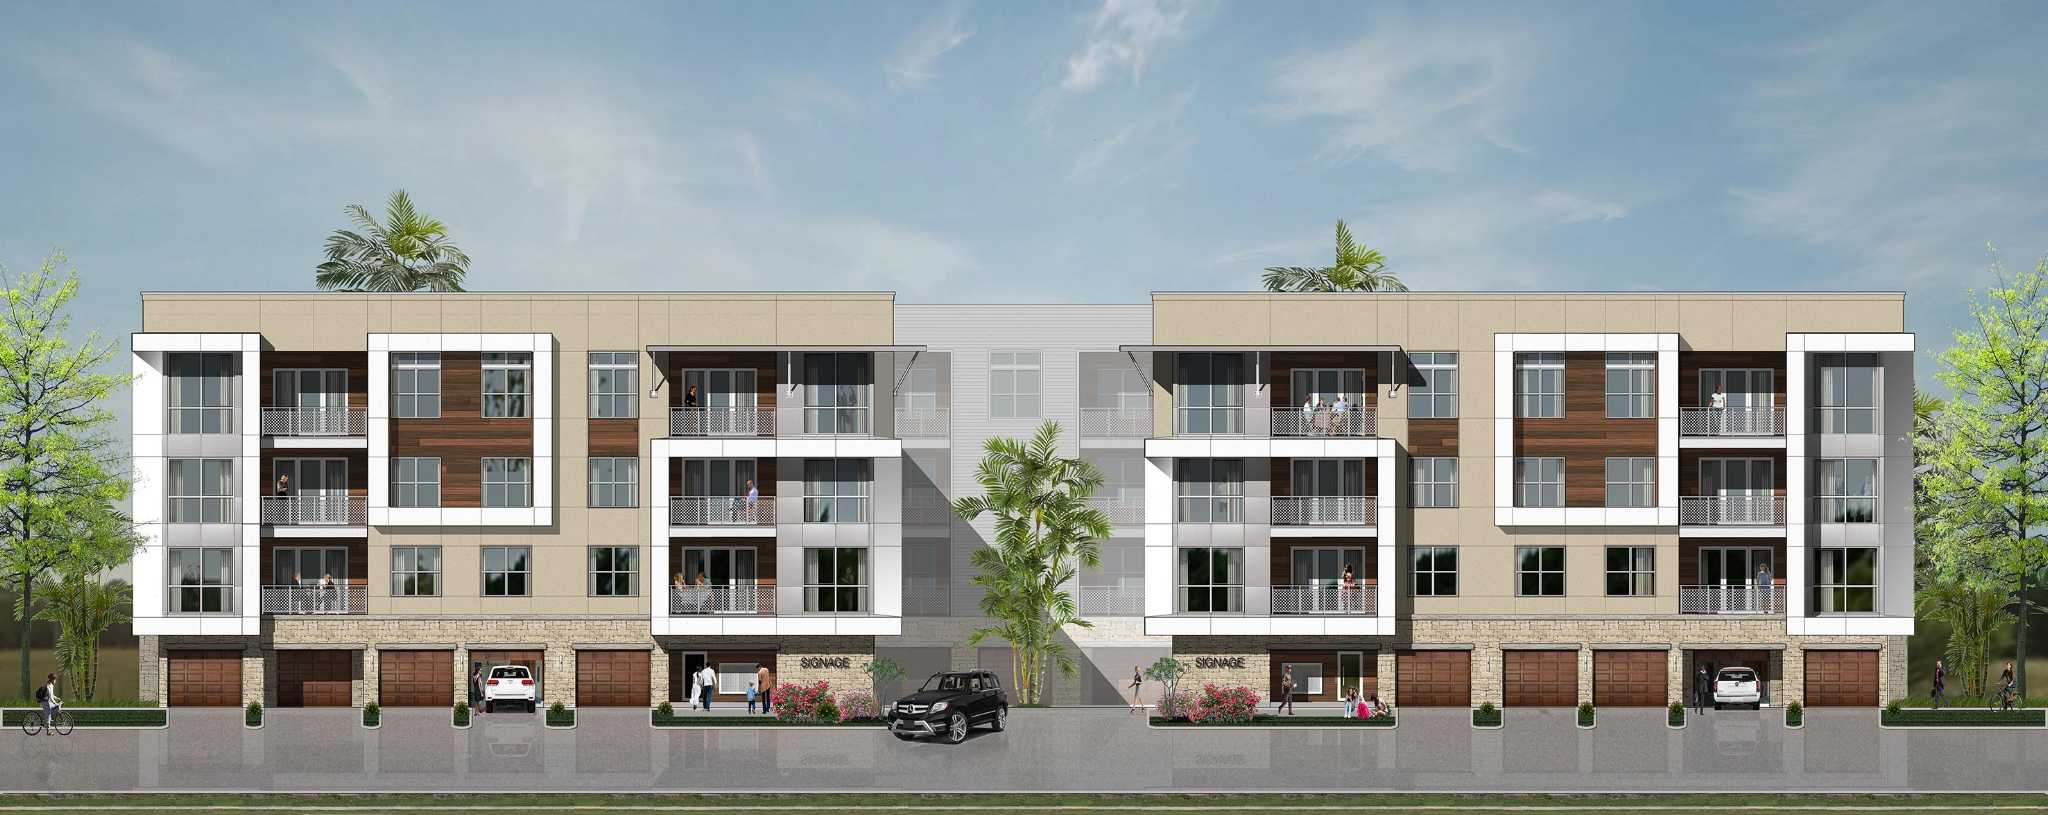 hines plans luxury apartment complex at the rim san antonio express news. Black Bedroom Furniture Sets. Home Design Ideas